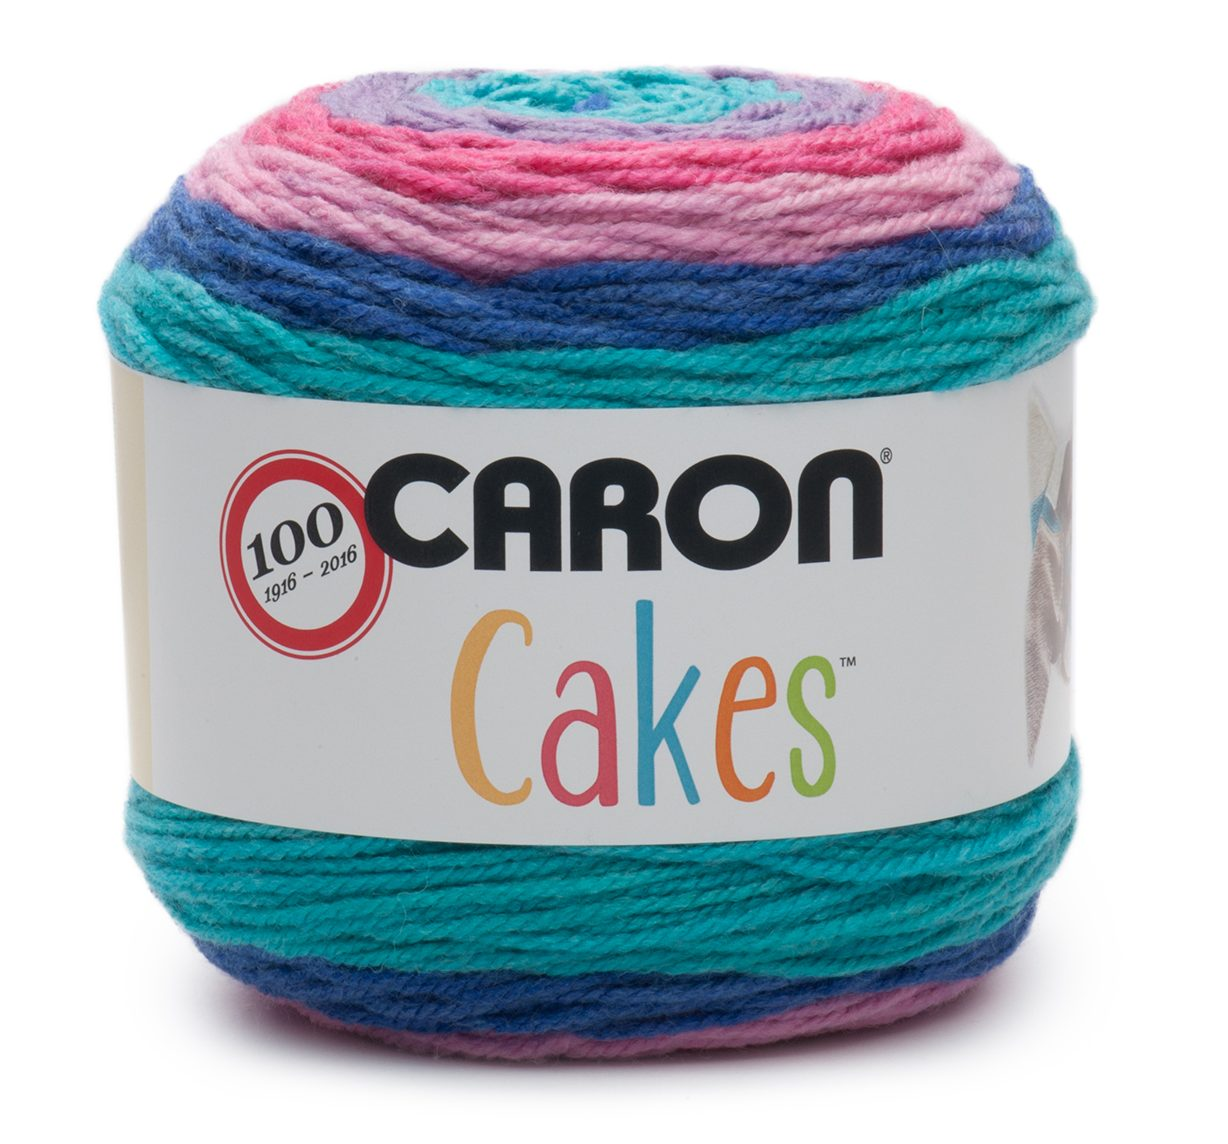 NEW Caron Cakes Mixed Berry Yarn - one of 8 new colorways for 2017 plus free patterns featuring the original Caron Cakes colors